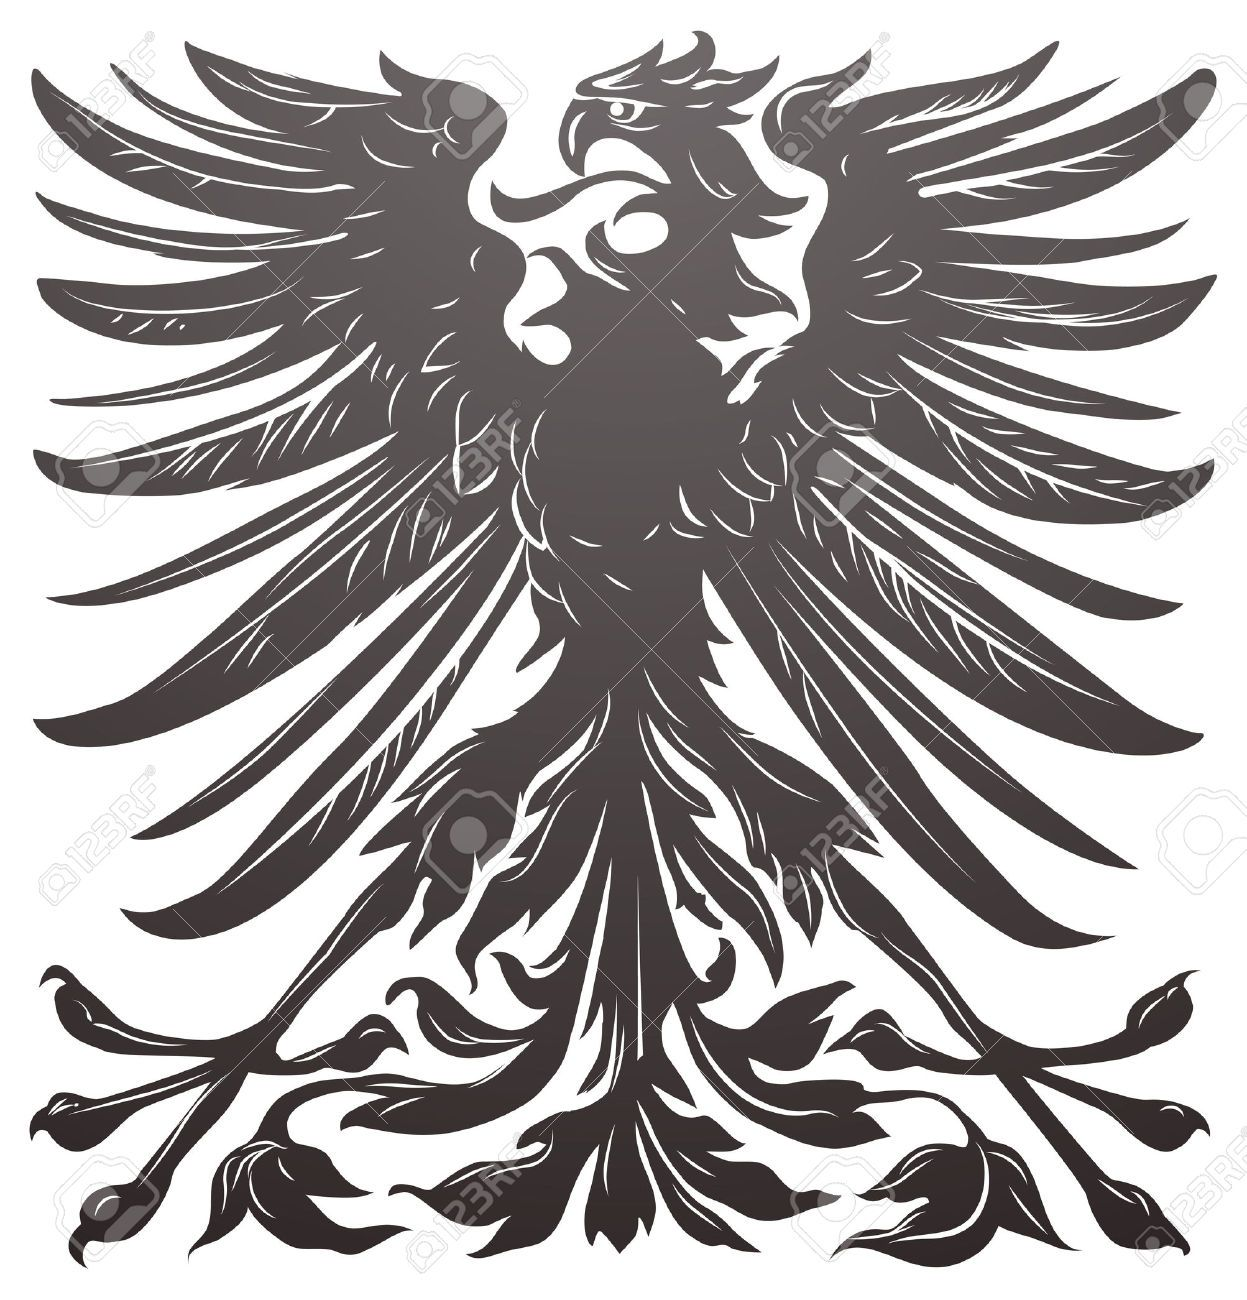 8898294-Imperial-eagle-most-resembling-that-used-on-the ...